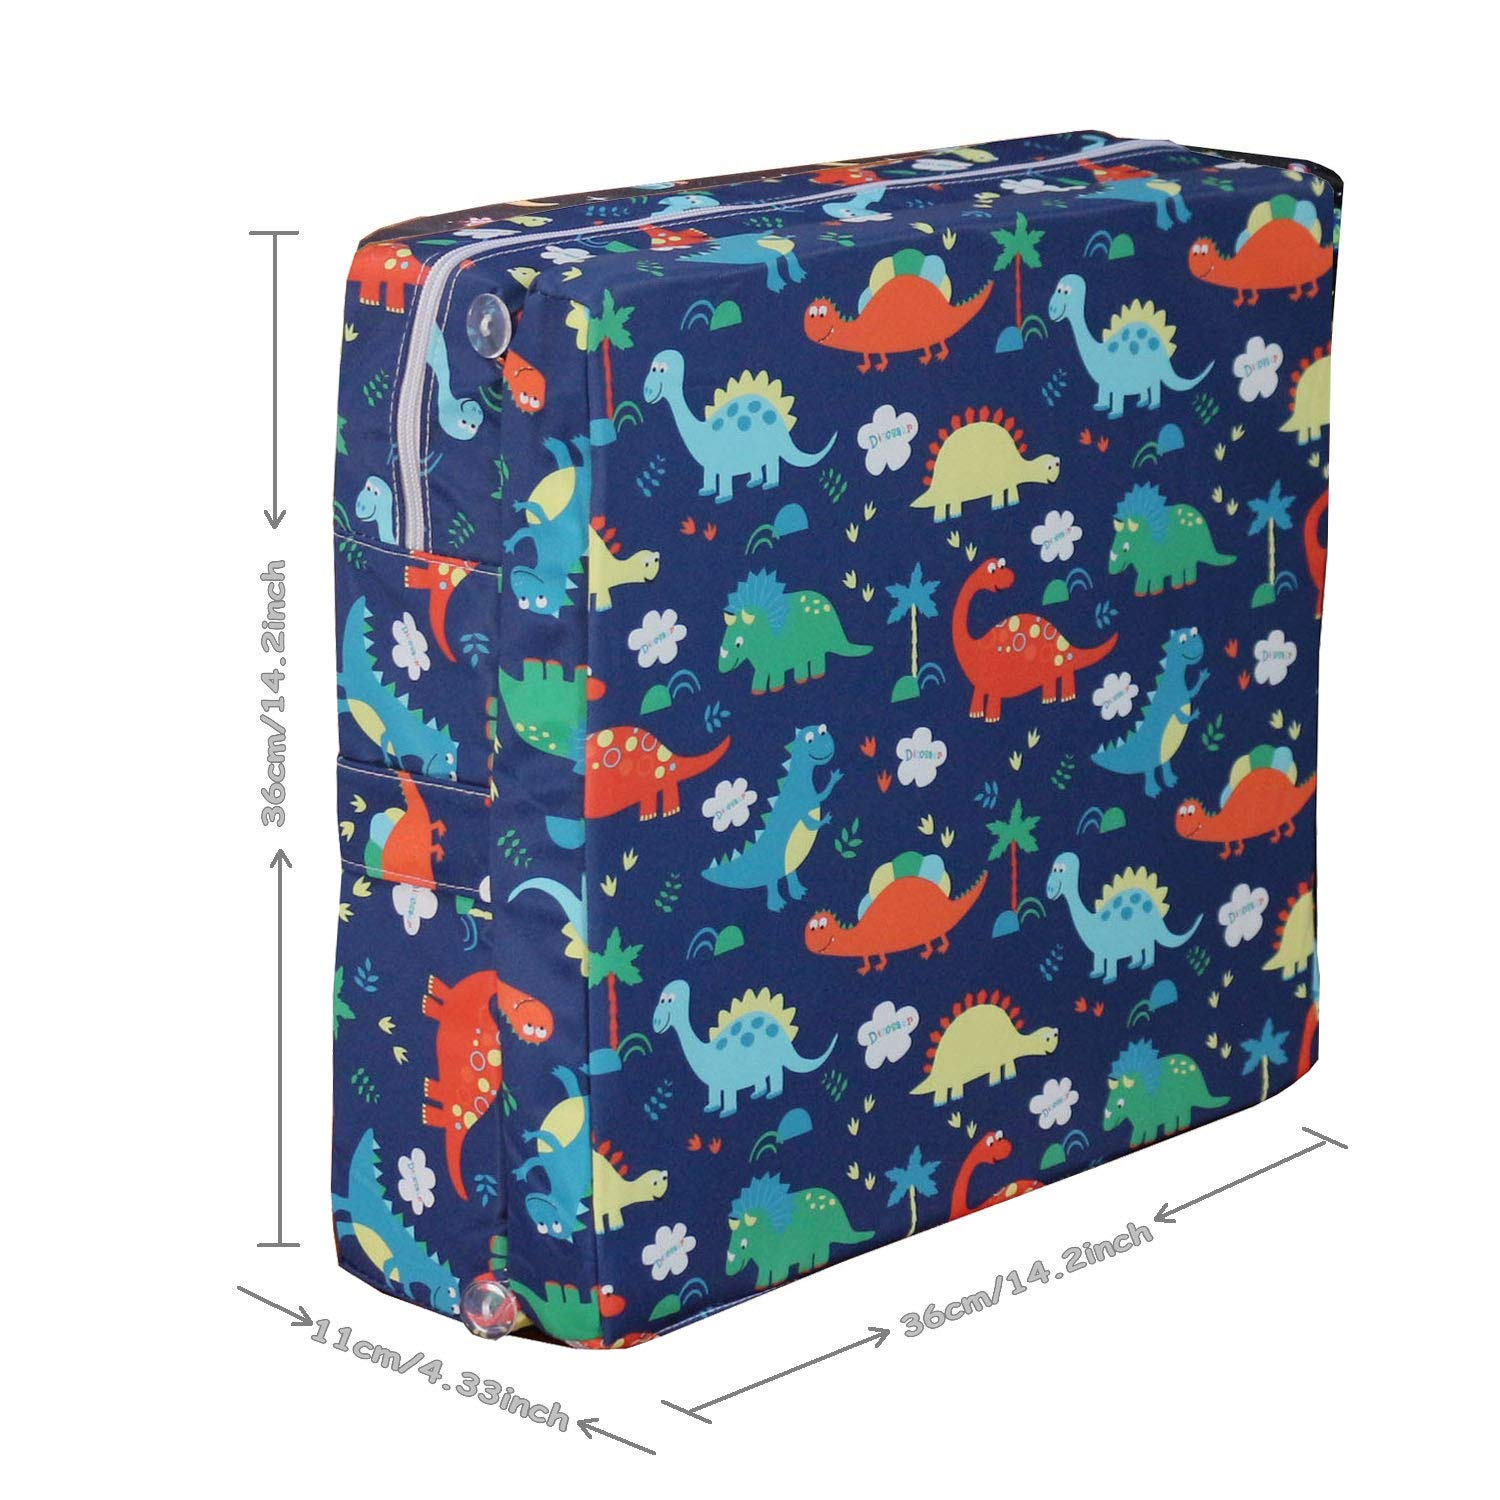 Dinosaur simpletome Chair Booster Seat Cushion Pad for Big Kids with 6 Safety Fixing Straps